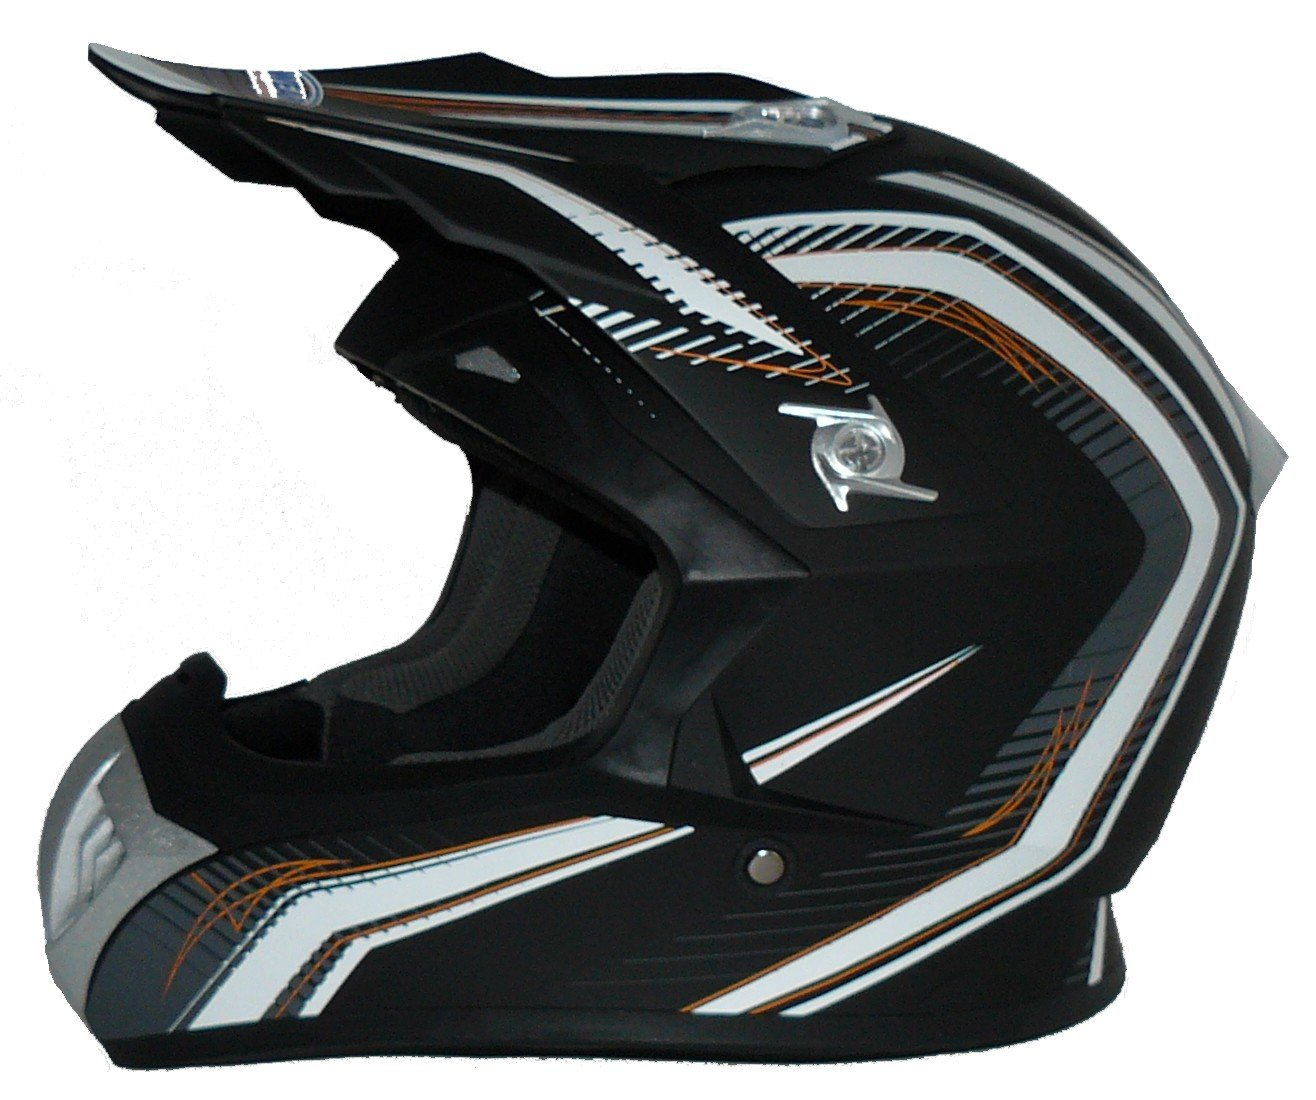 Amazon.es: Protectwear Casco de cross / Enduro naranja-negro FS603-OR Tamaño M